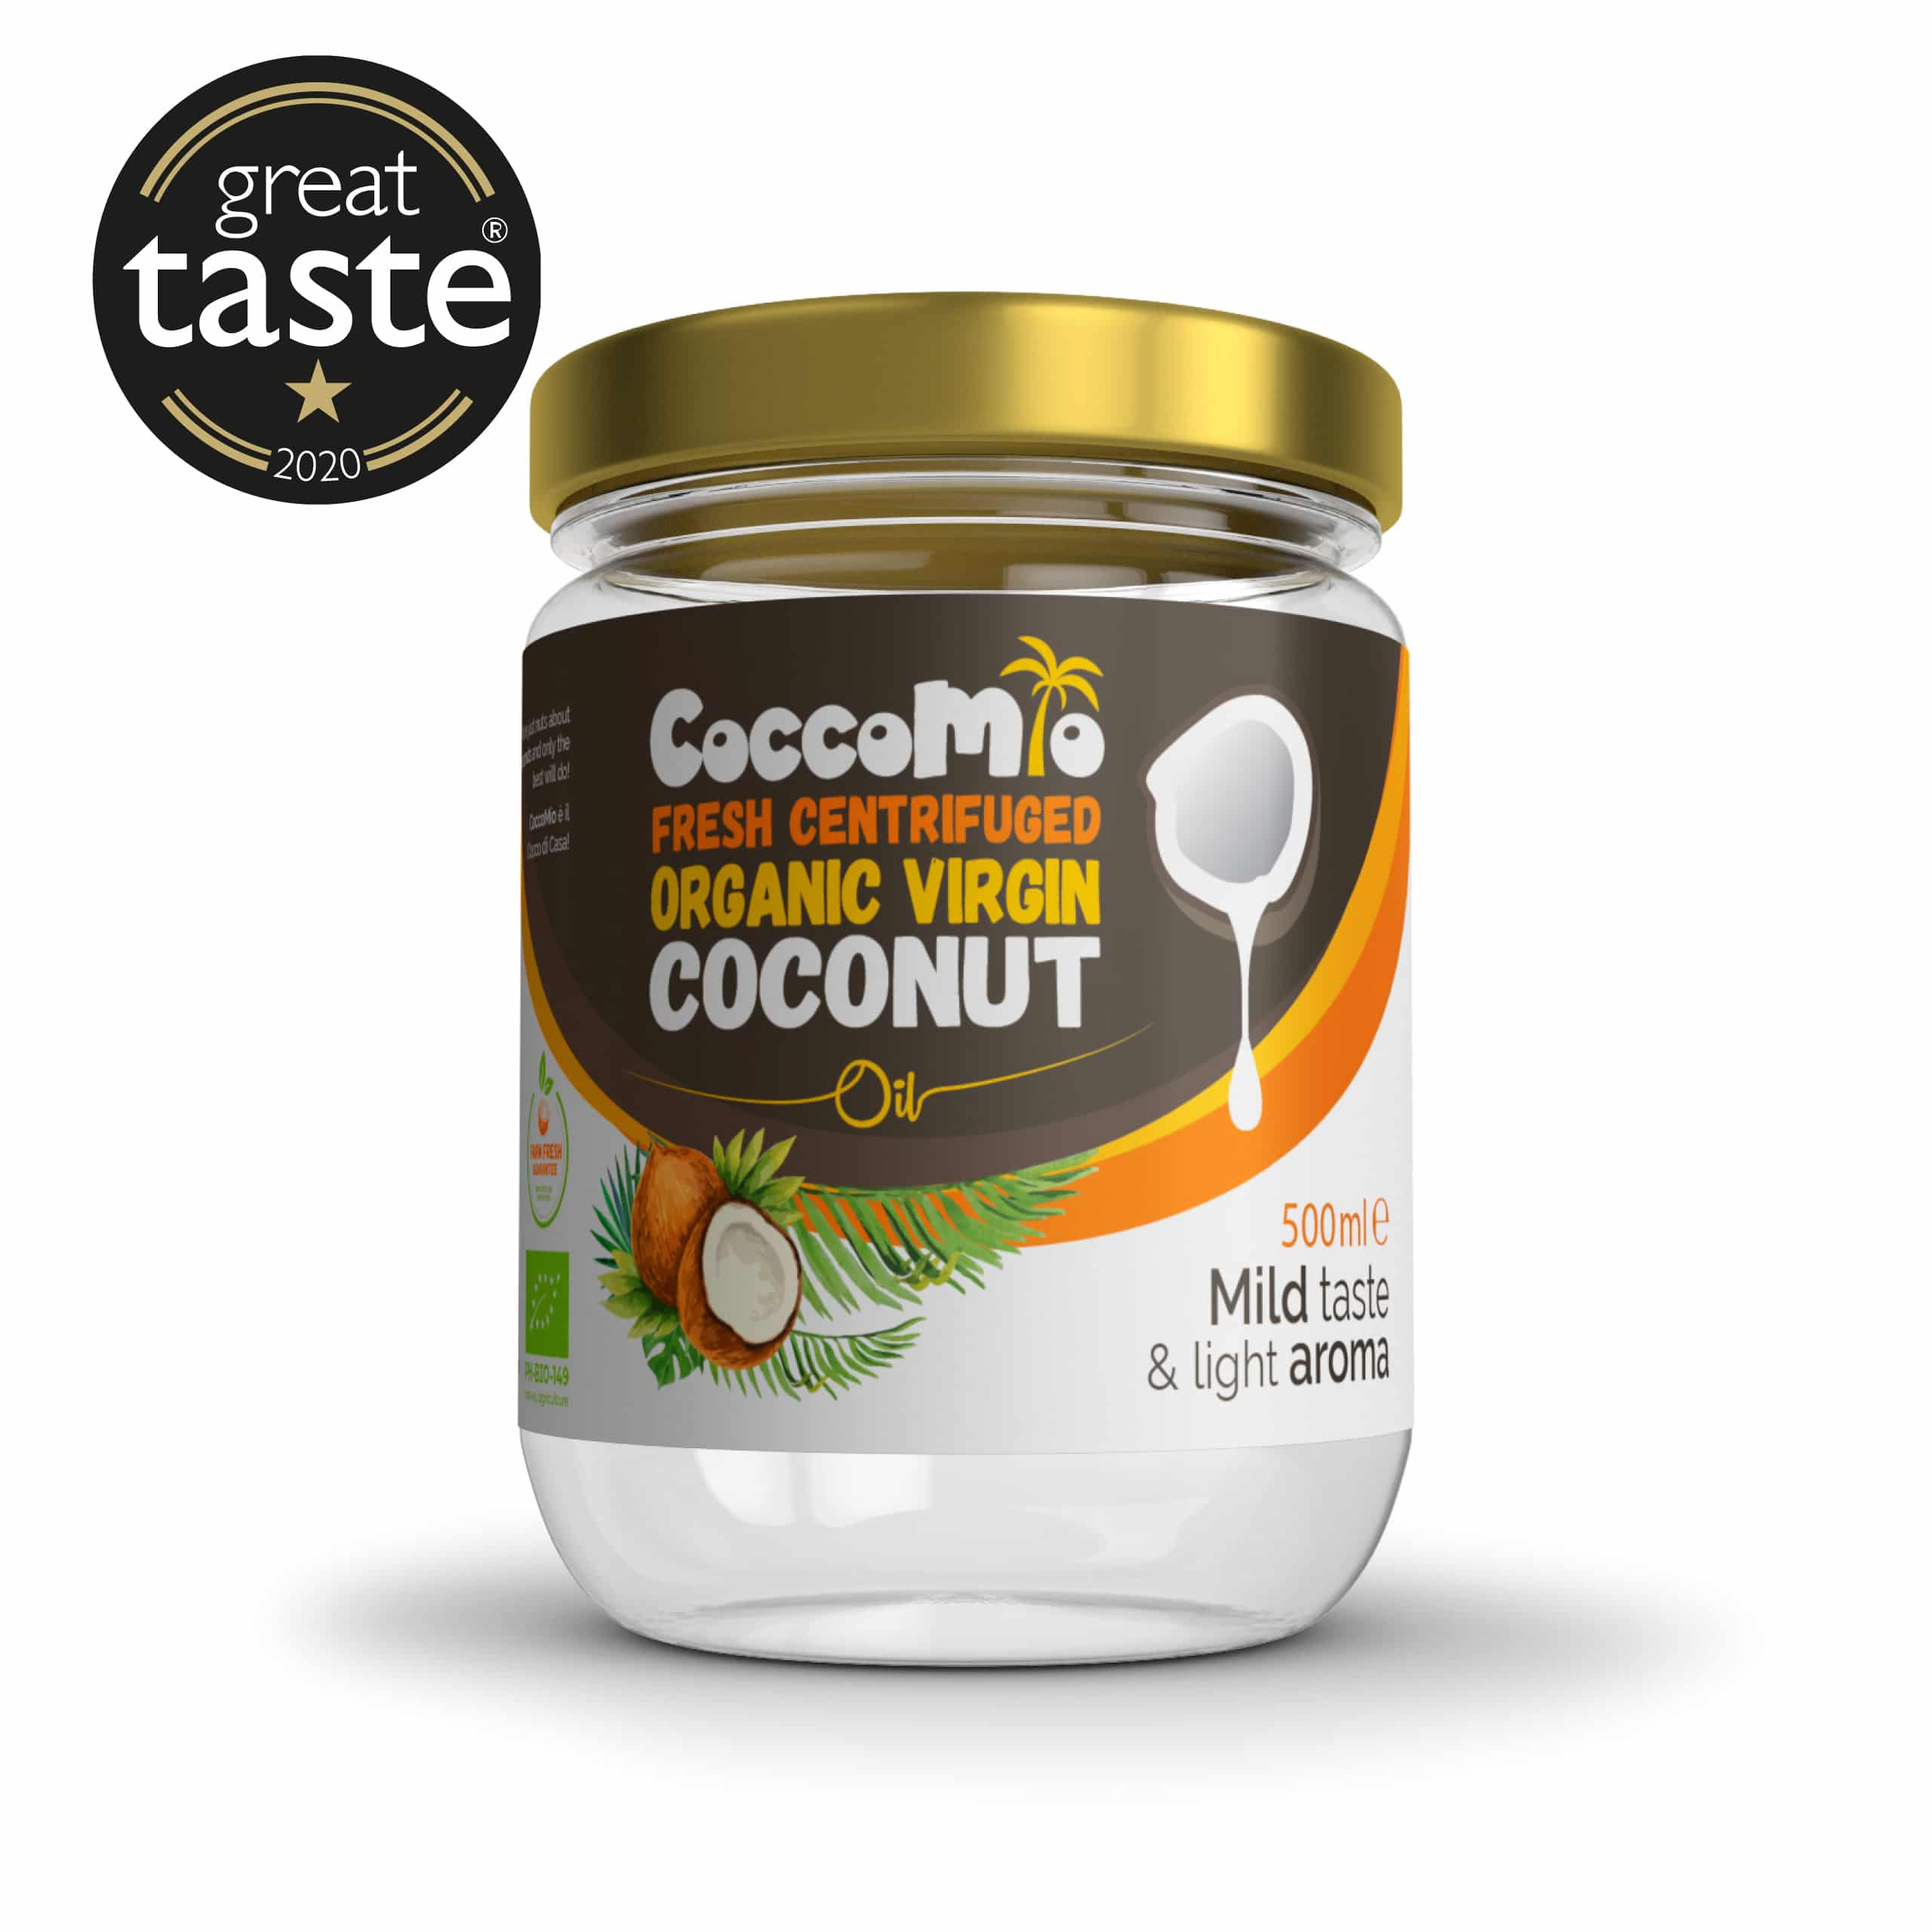 CoccoMio Fresh Centrifuged Organic Virgin Coconut Oil 500ml